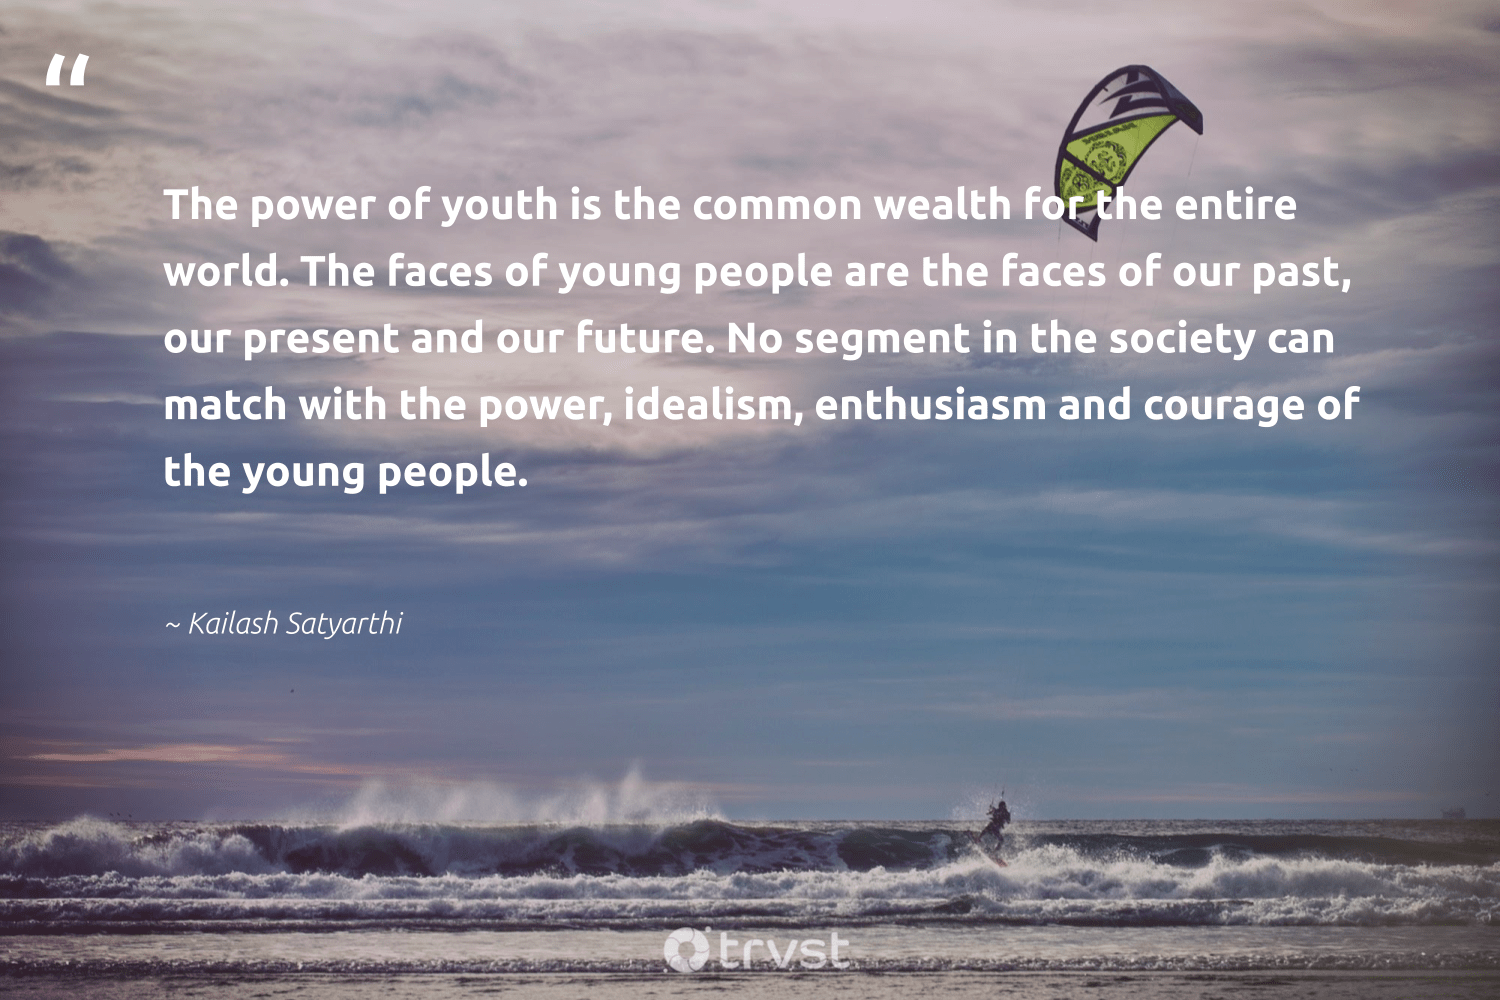 """""""The power of youth is the common wealth for the entire world. The faces of young people are the faces of our past, our present and our future. No segment in the society can match with the power, idealism, enthusiasm and courage of the young people.""""  - Kailash Satyarthi #trvst #quotes #society #communities #socialimpact #makeadifference #ecoconscious #dogood #impact #weareallone #gogreen #equalopportunity"""